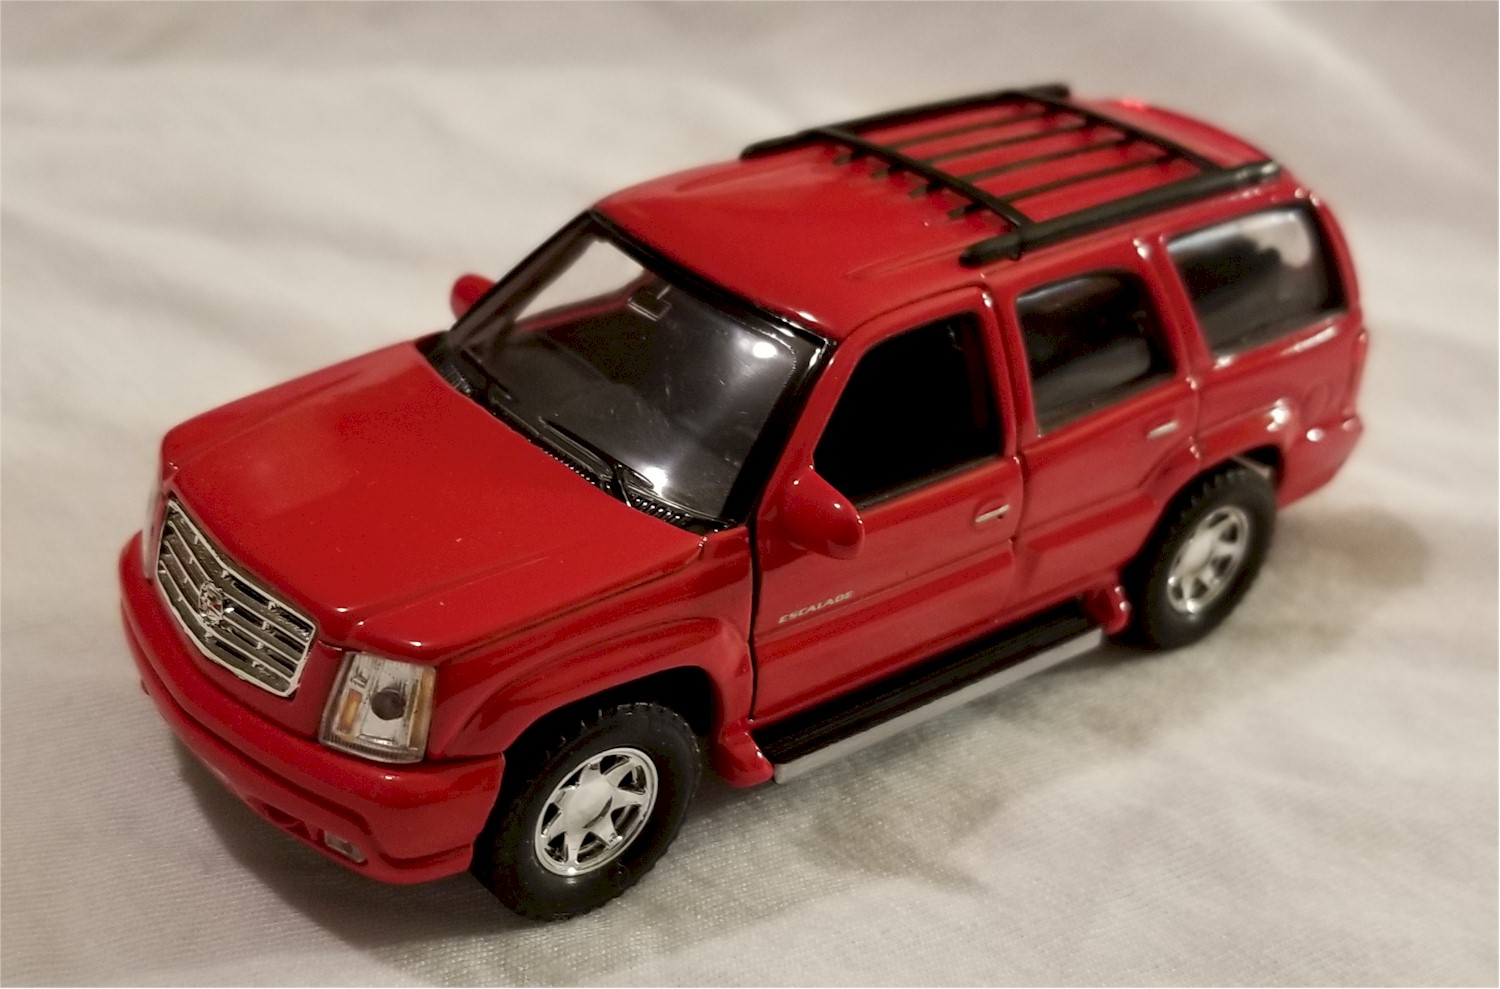 Welly 4.75 Inch Escalade Scale Diecast Metal Model RED